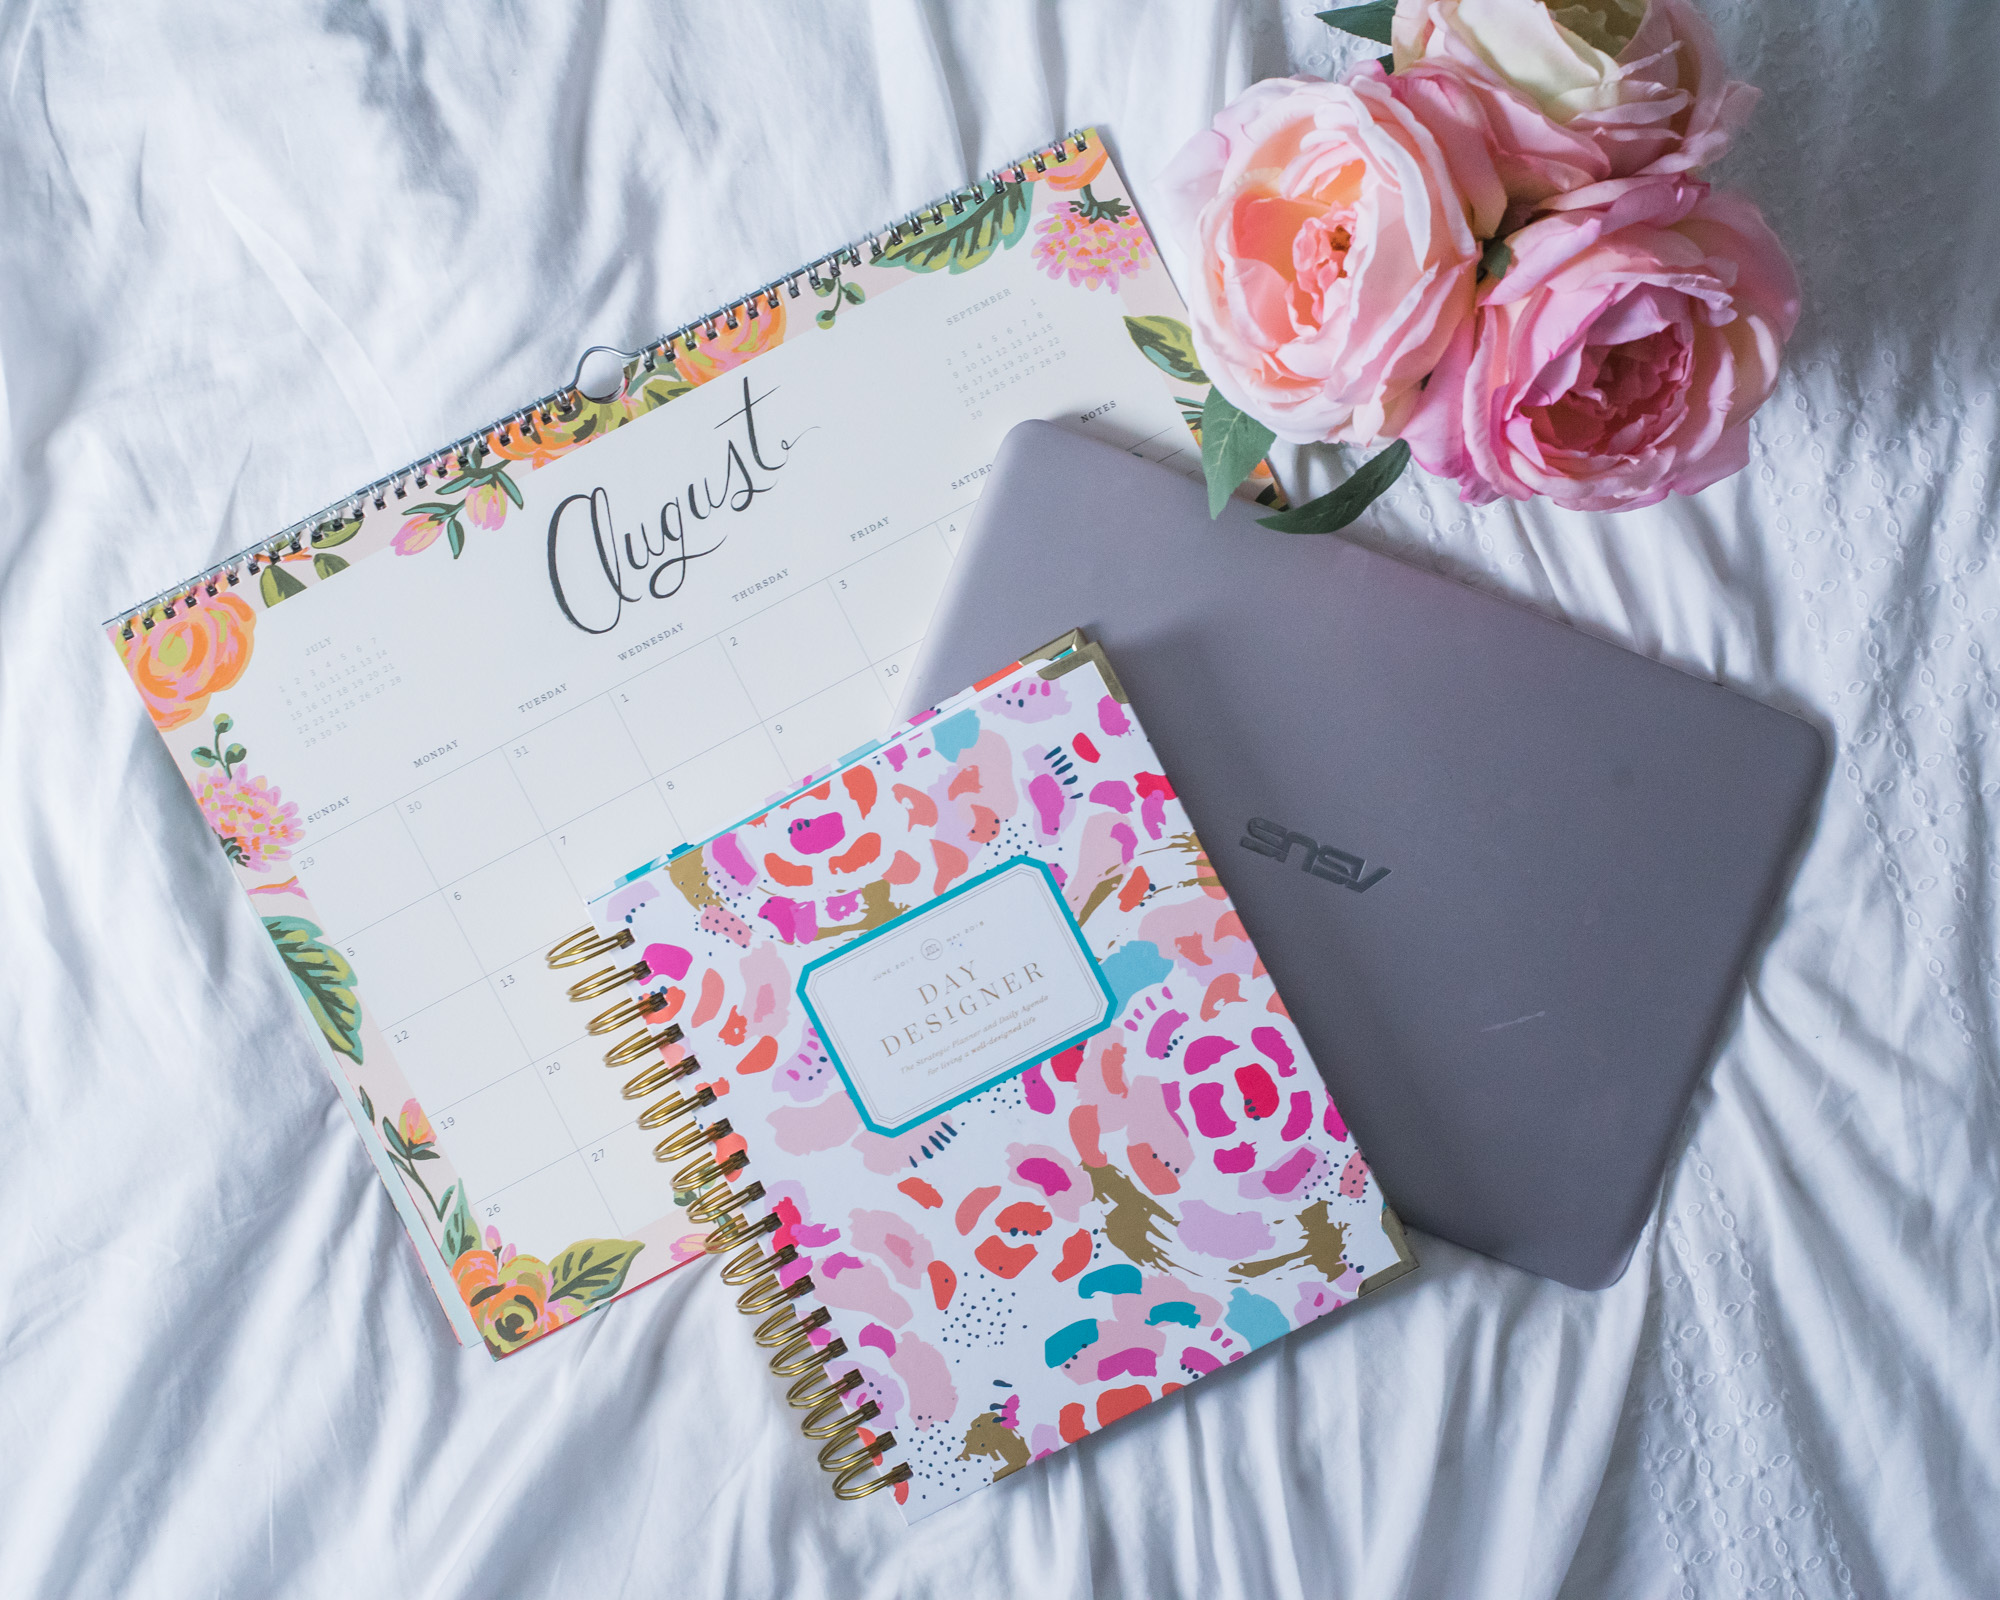 Stay Organized with the Day designer day planner with hourly scheduling